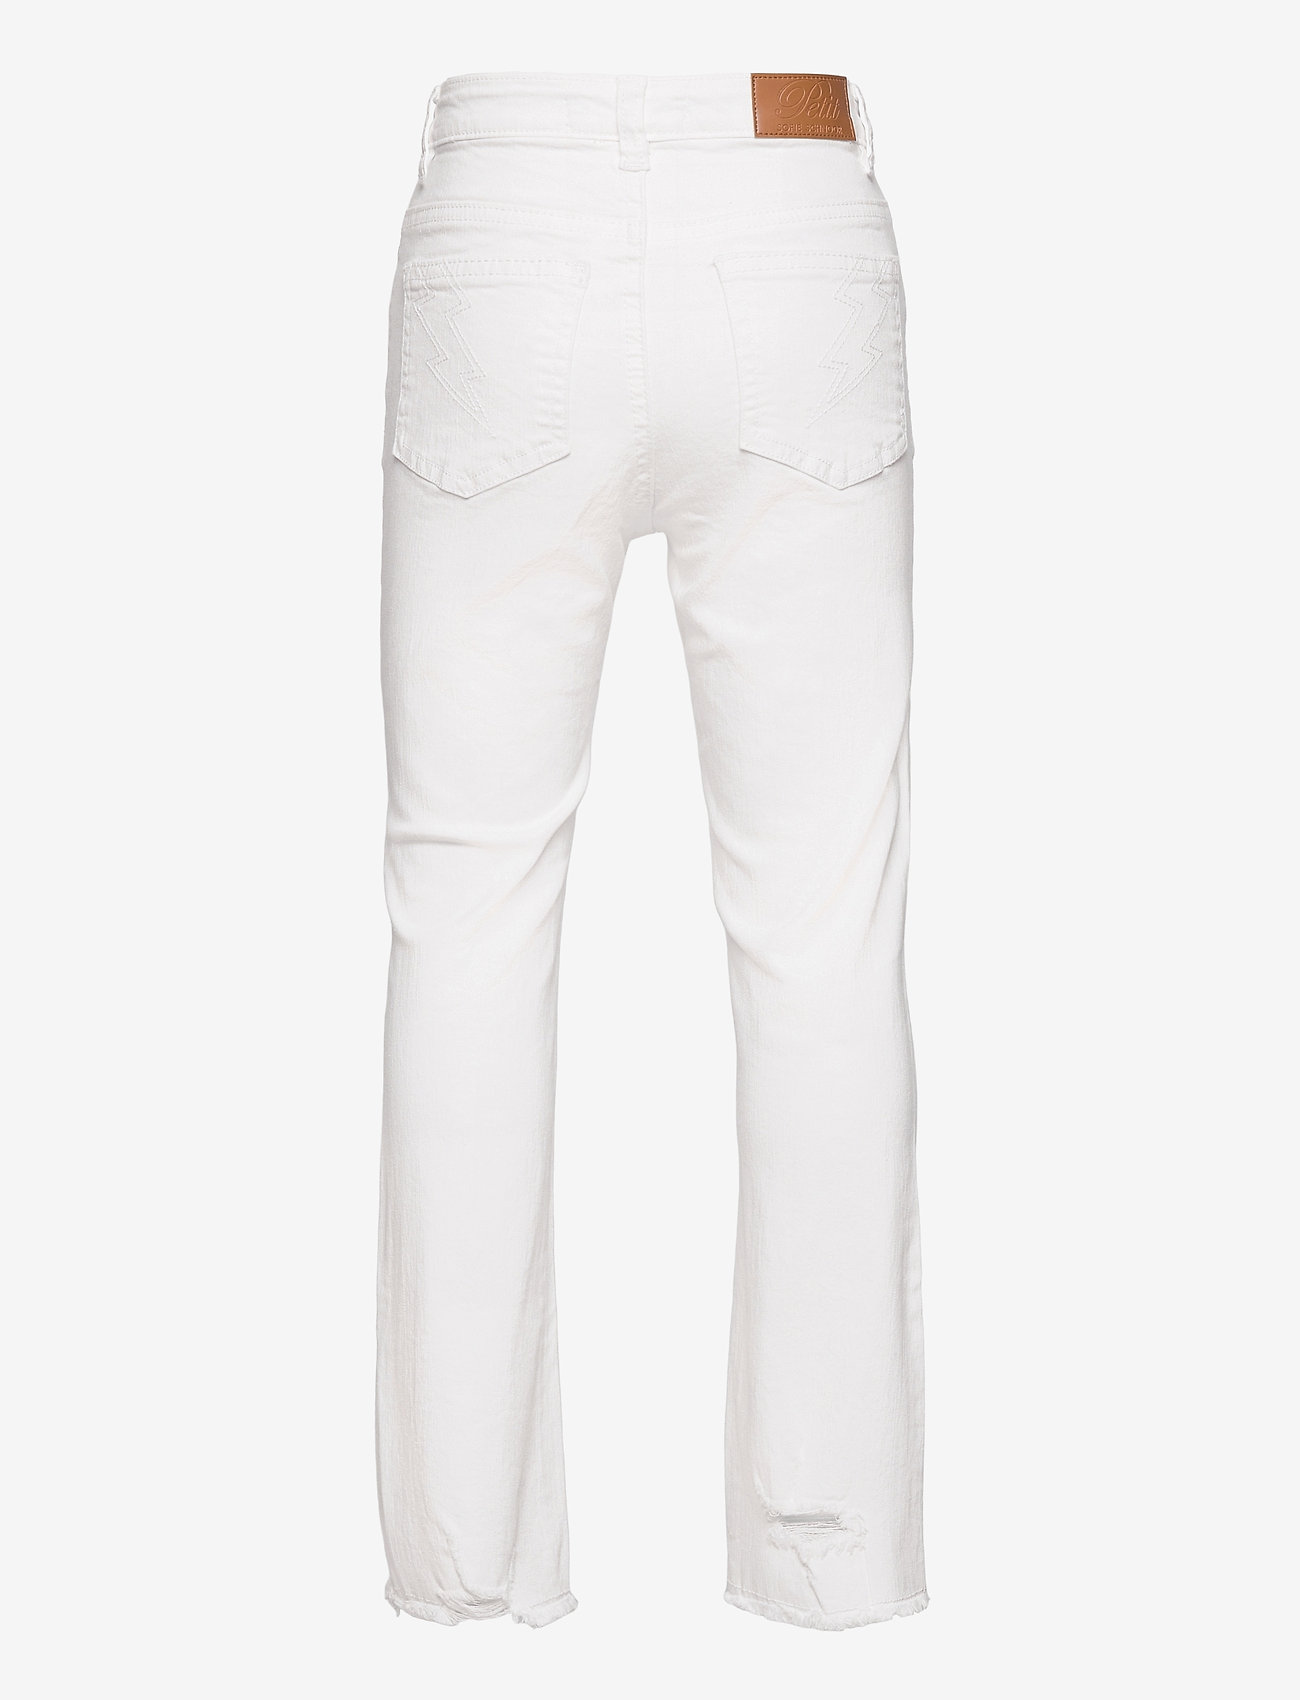 Petit by Sofie Schnoor - Pants - jeans - off white - 1